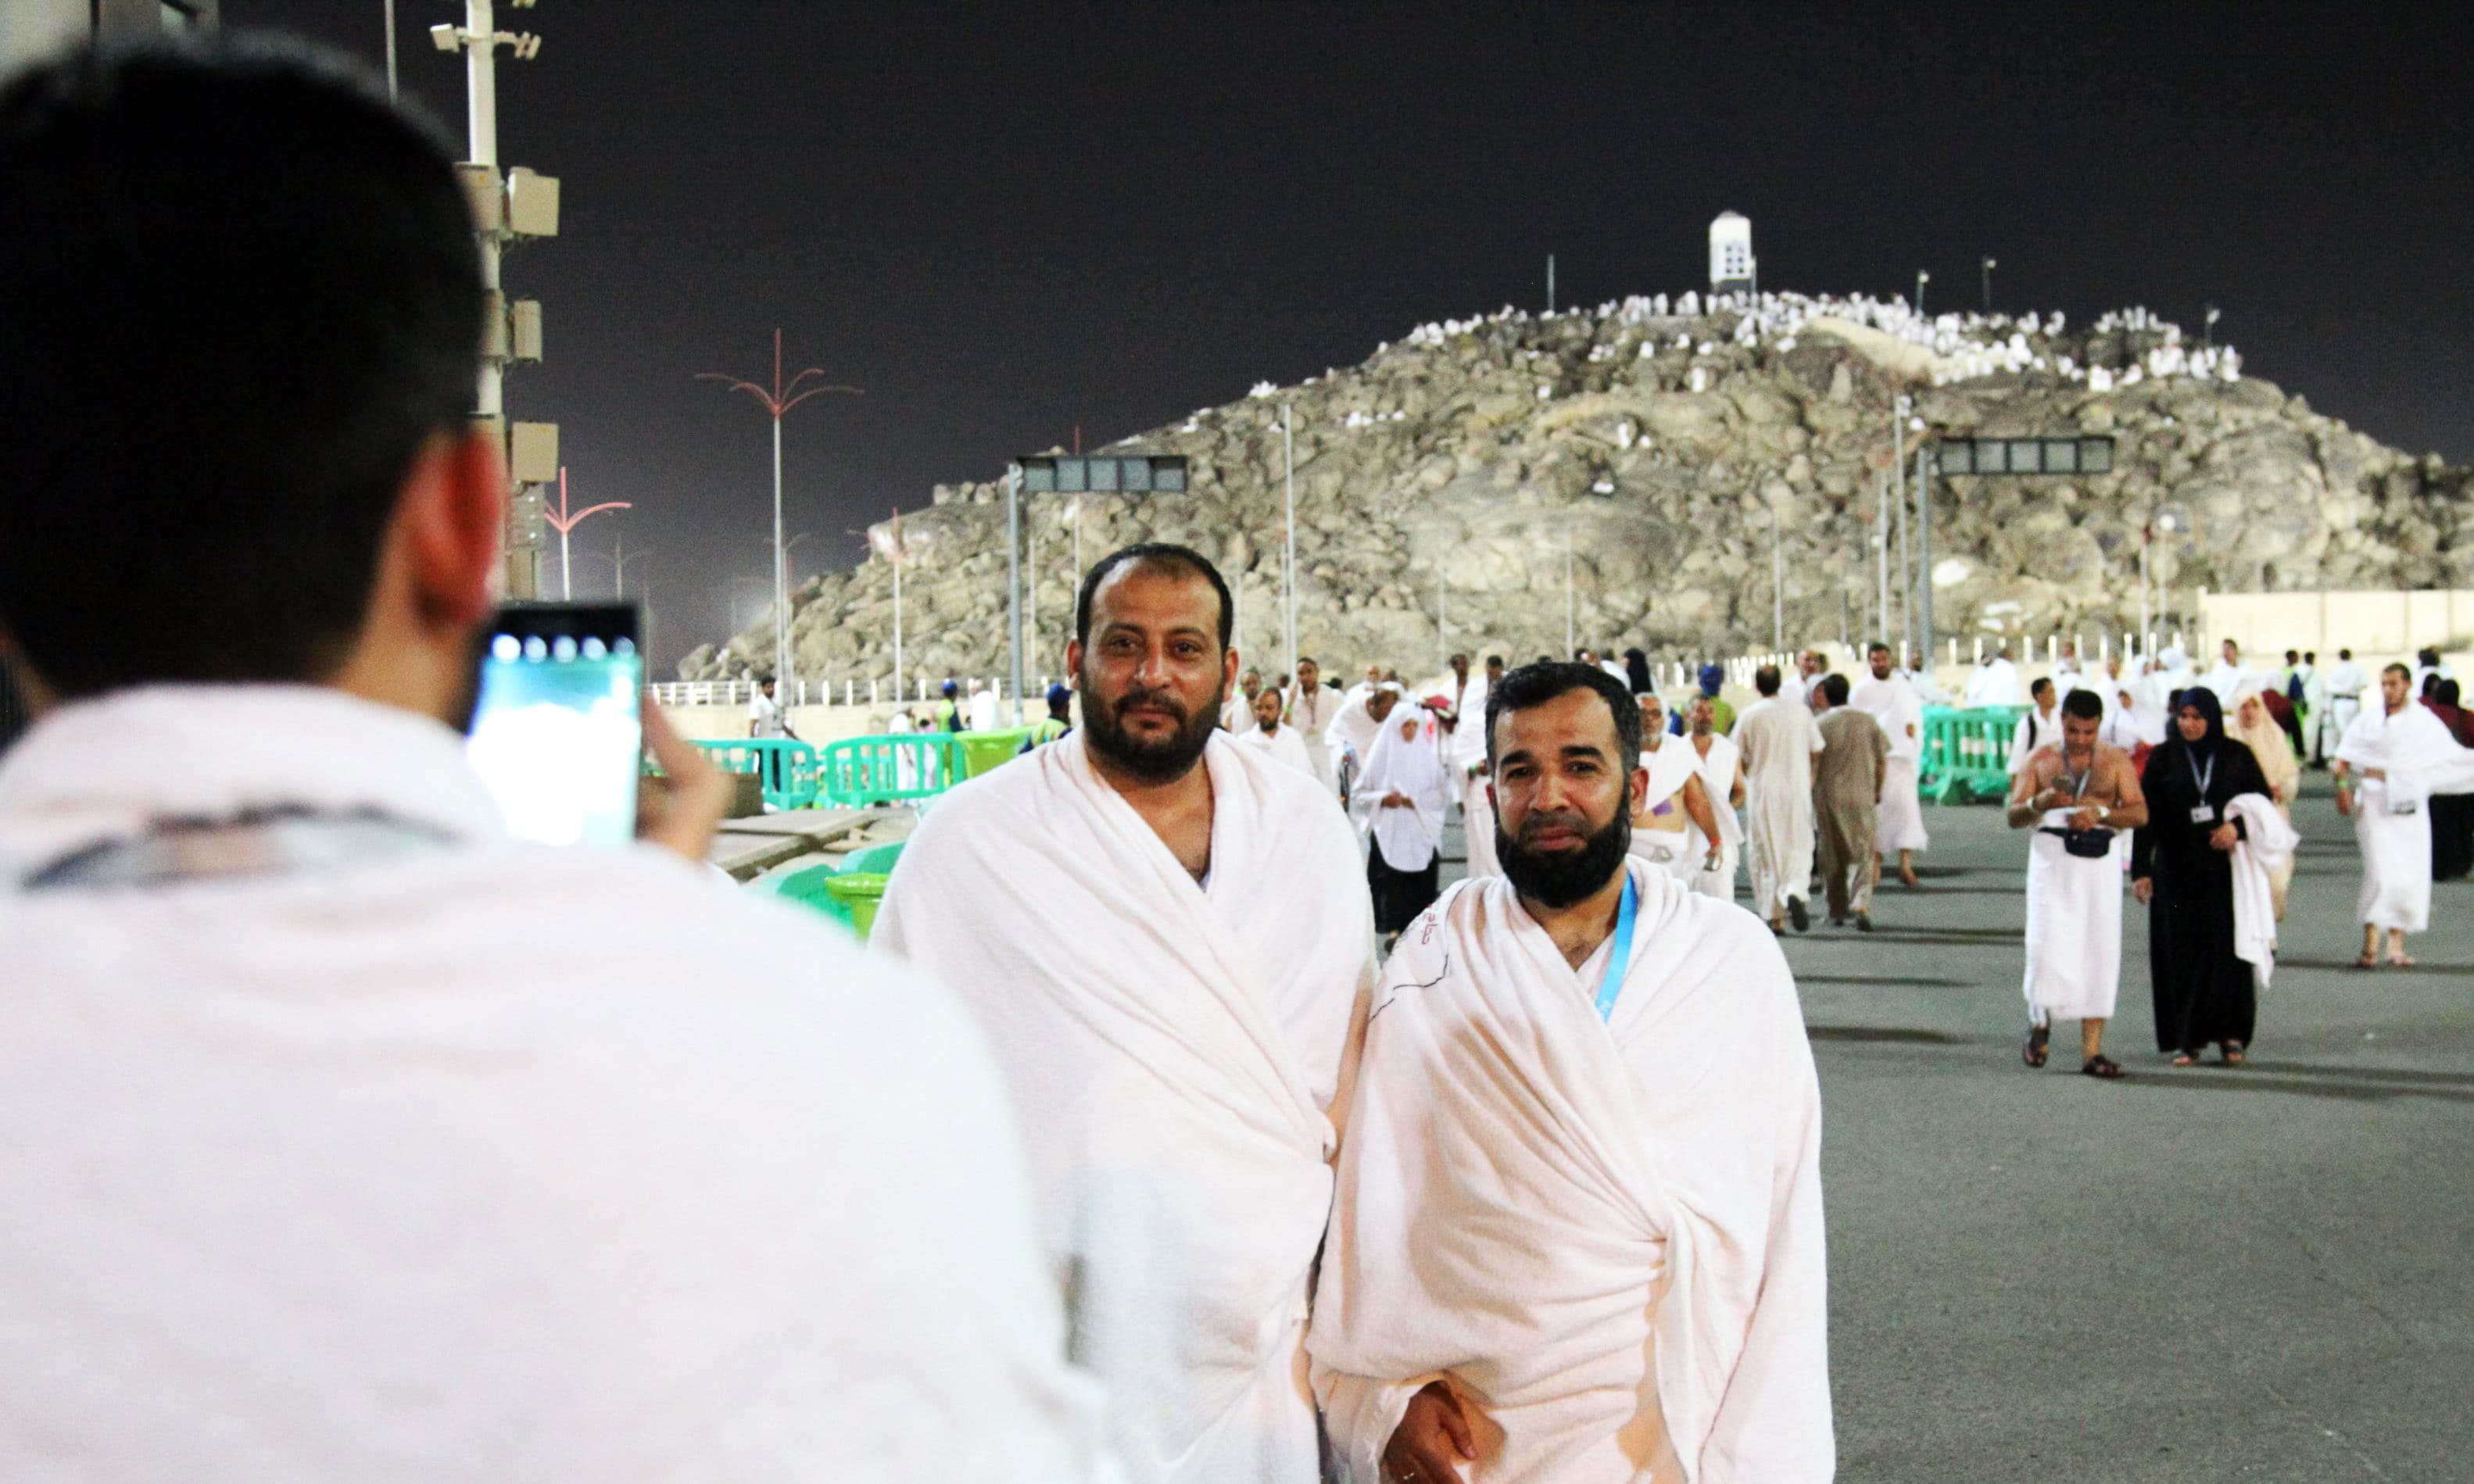 Pilgrims pose for a photo in front of Mount Arafat on the eve of Arafat Day.—AFP